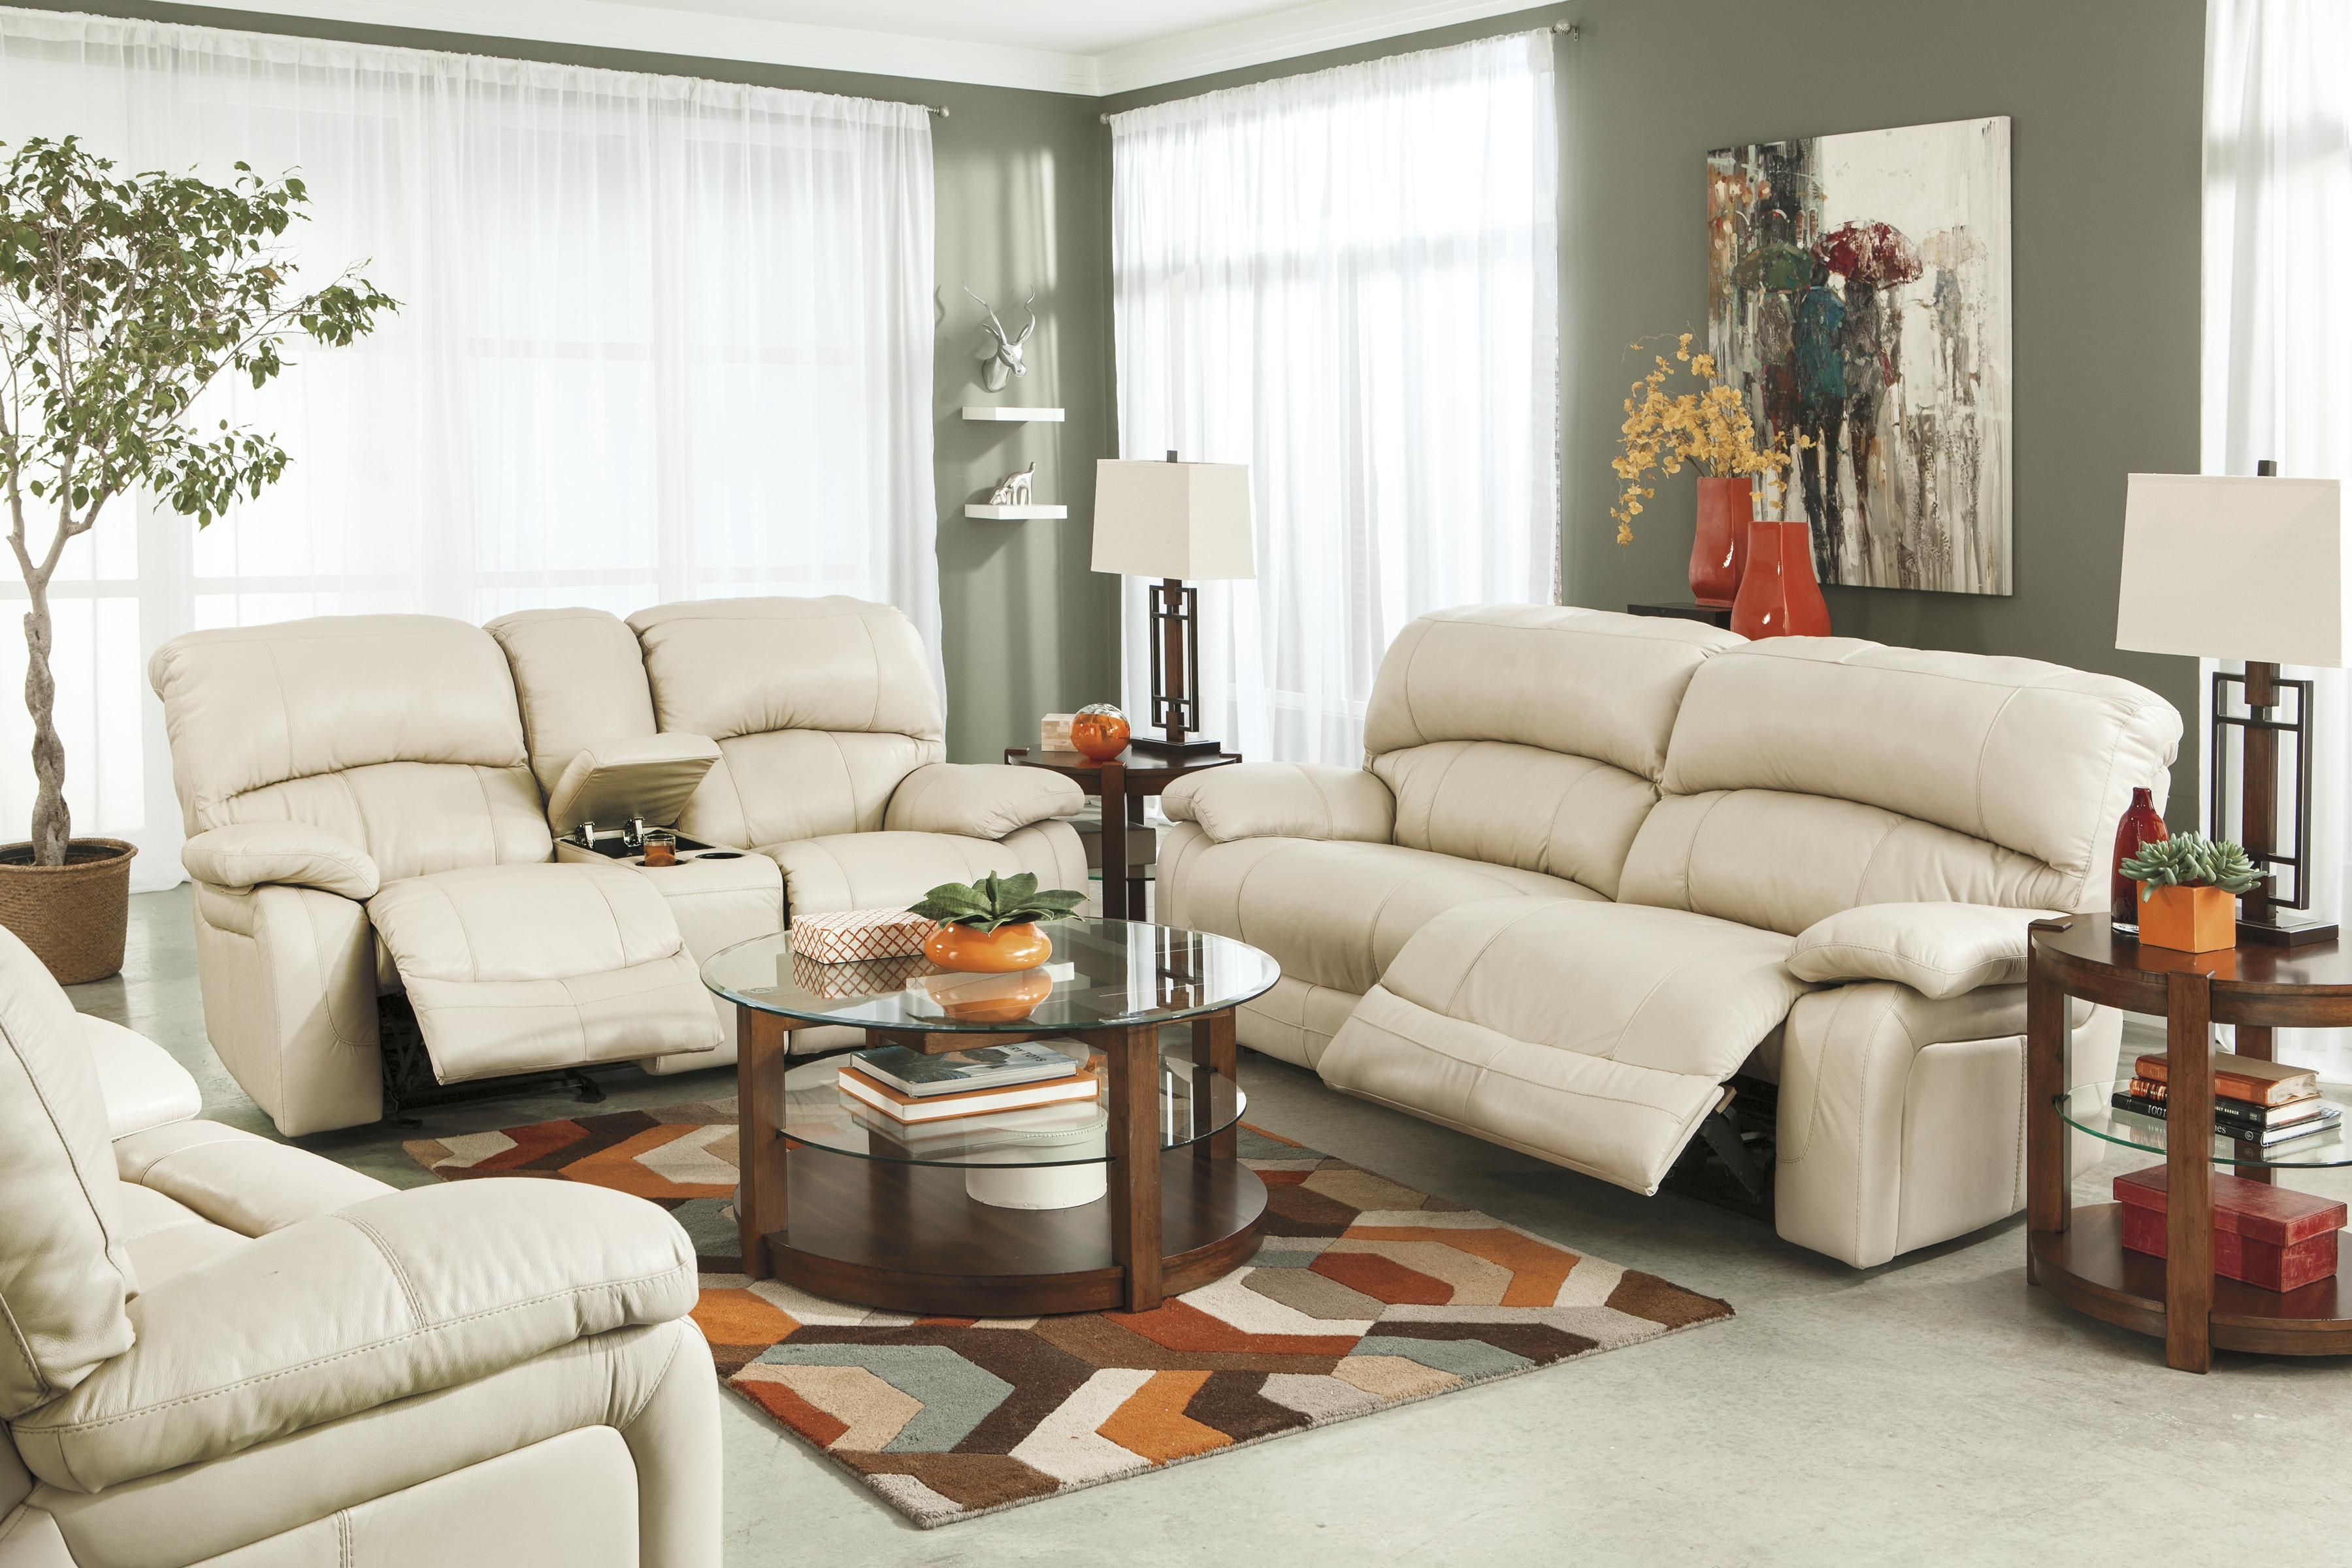 Signature Design by Ashley Damacio - Cream Reclining Living Room Group - Item Number: U98201 Living Room Group 4